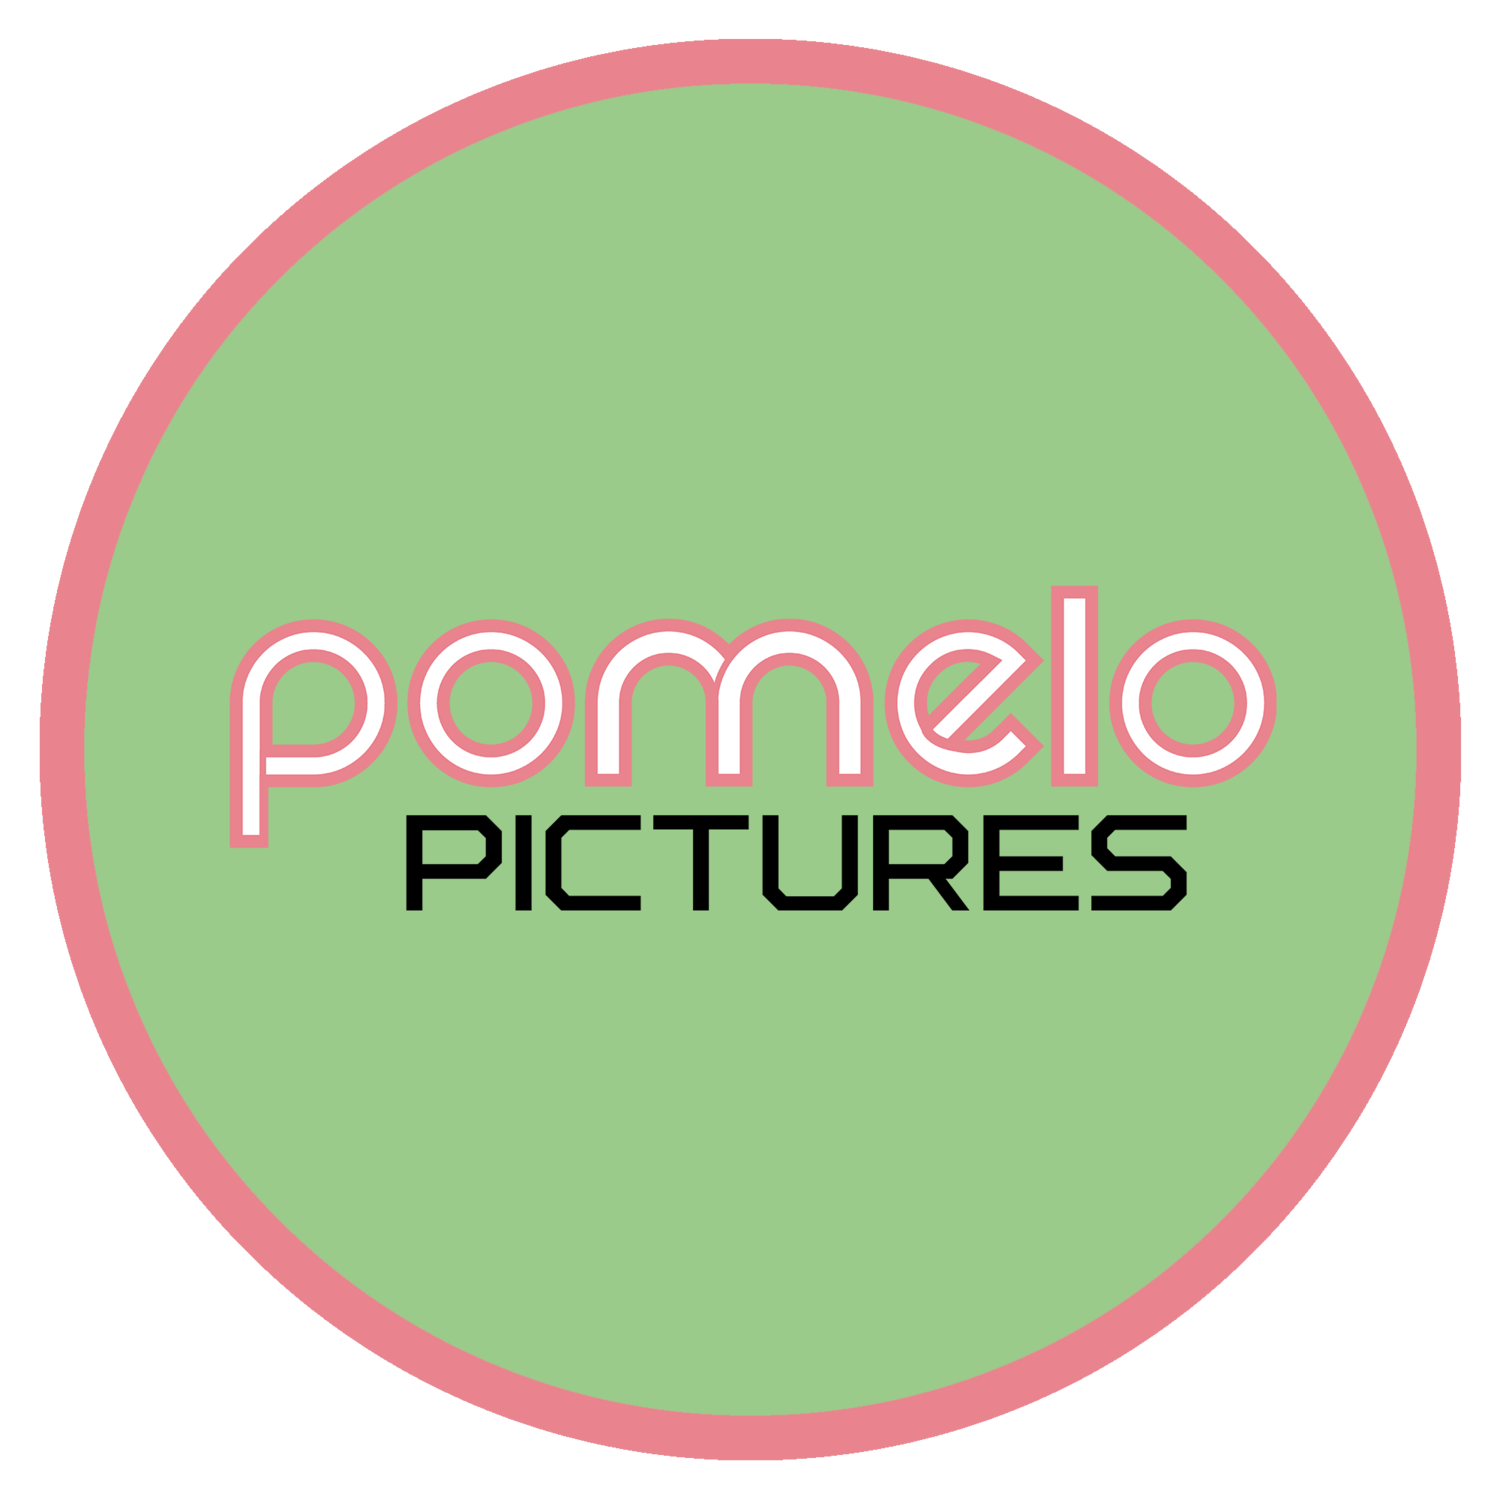 Pomelo Pictures